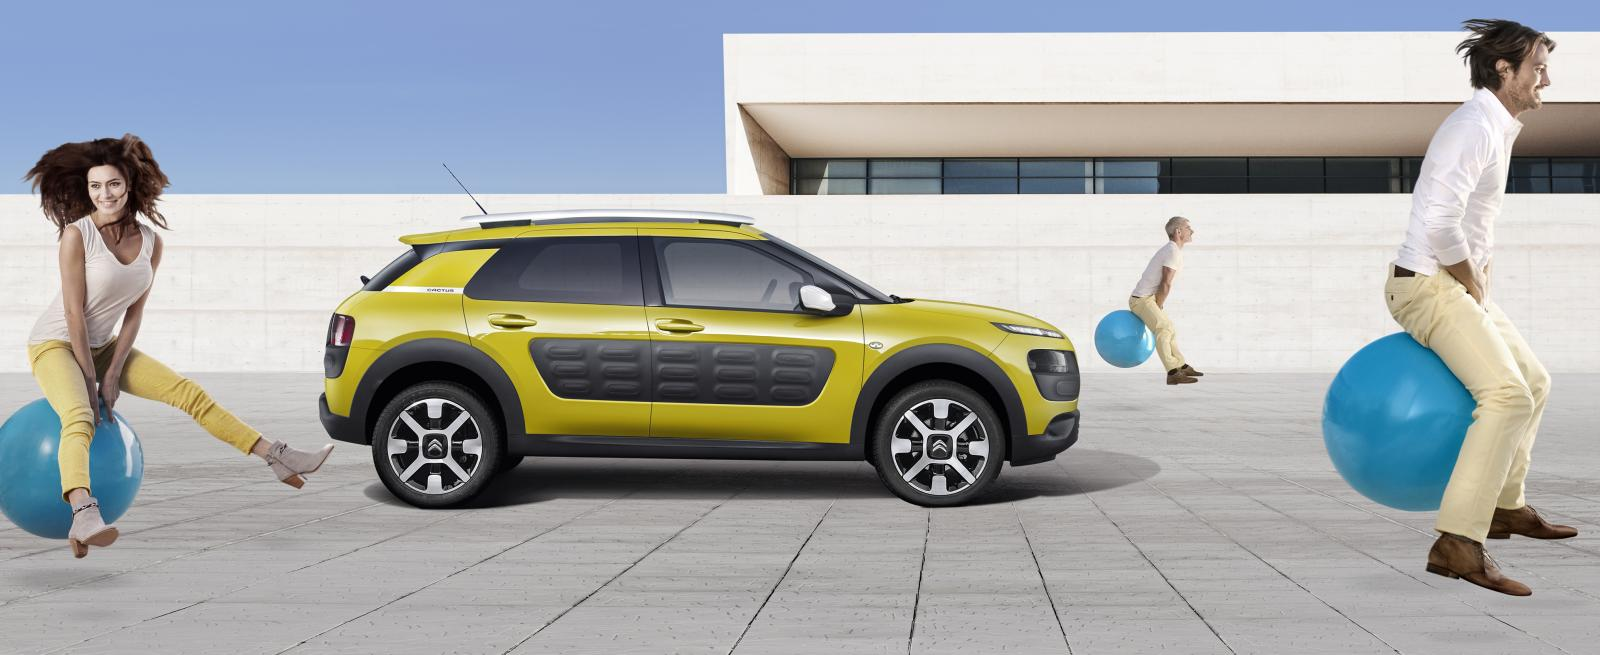 C4 Cactus Feel edition 2014 profile